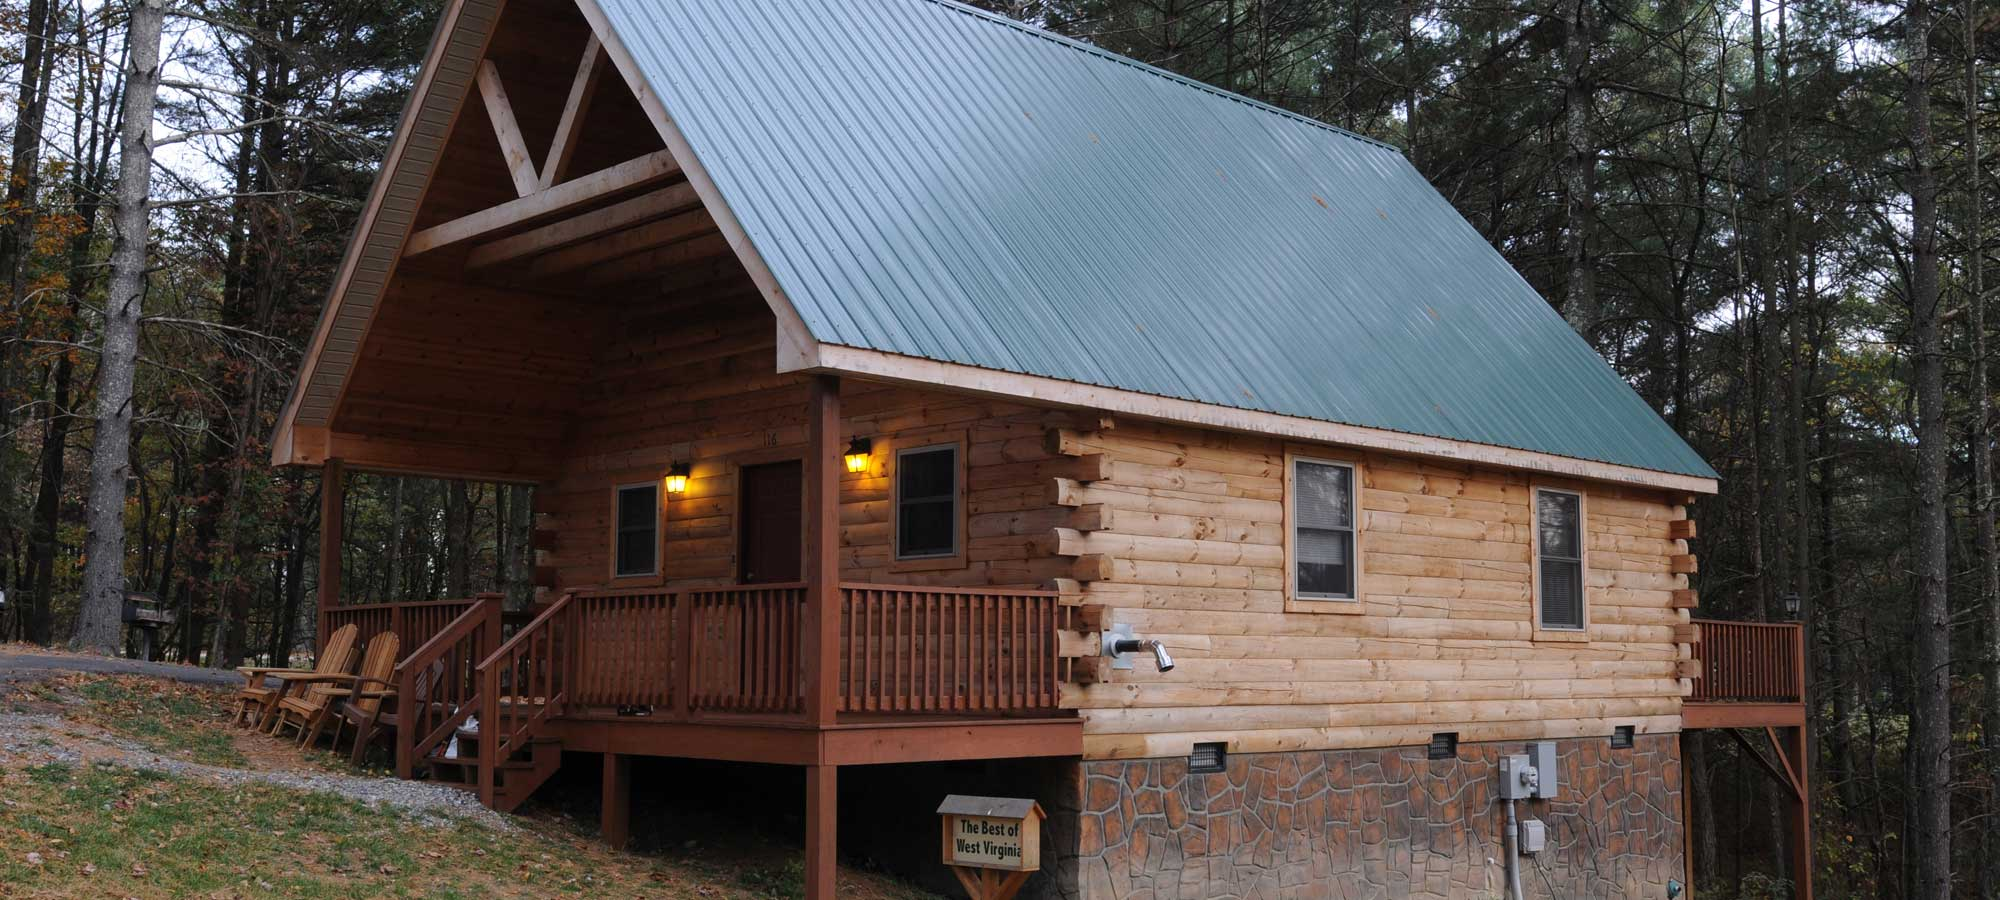 Best Of West Virginia 2 Br The Cabins At Pine Haven